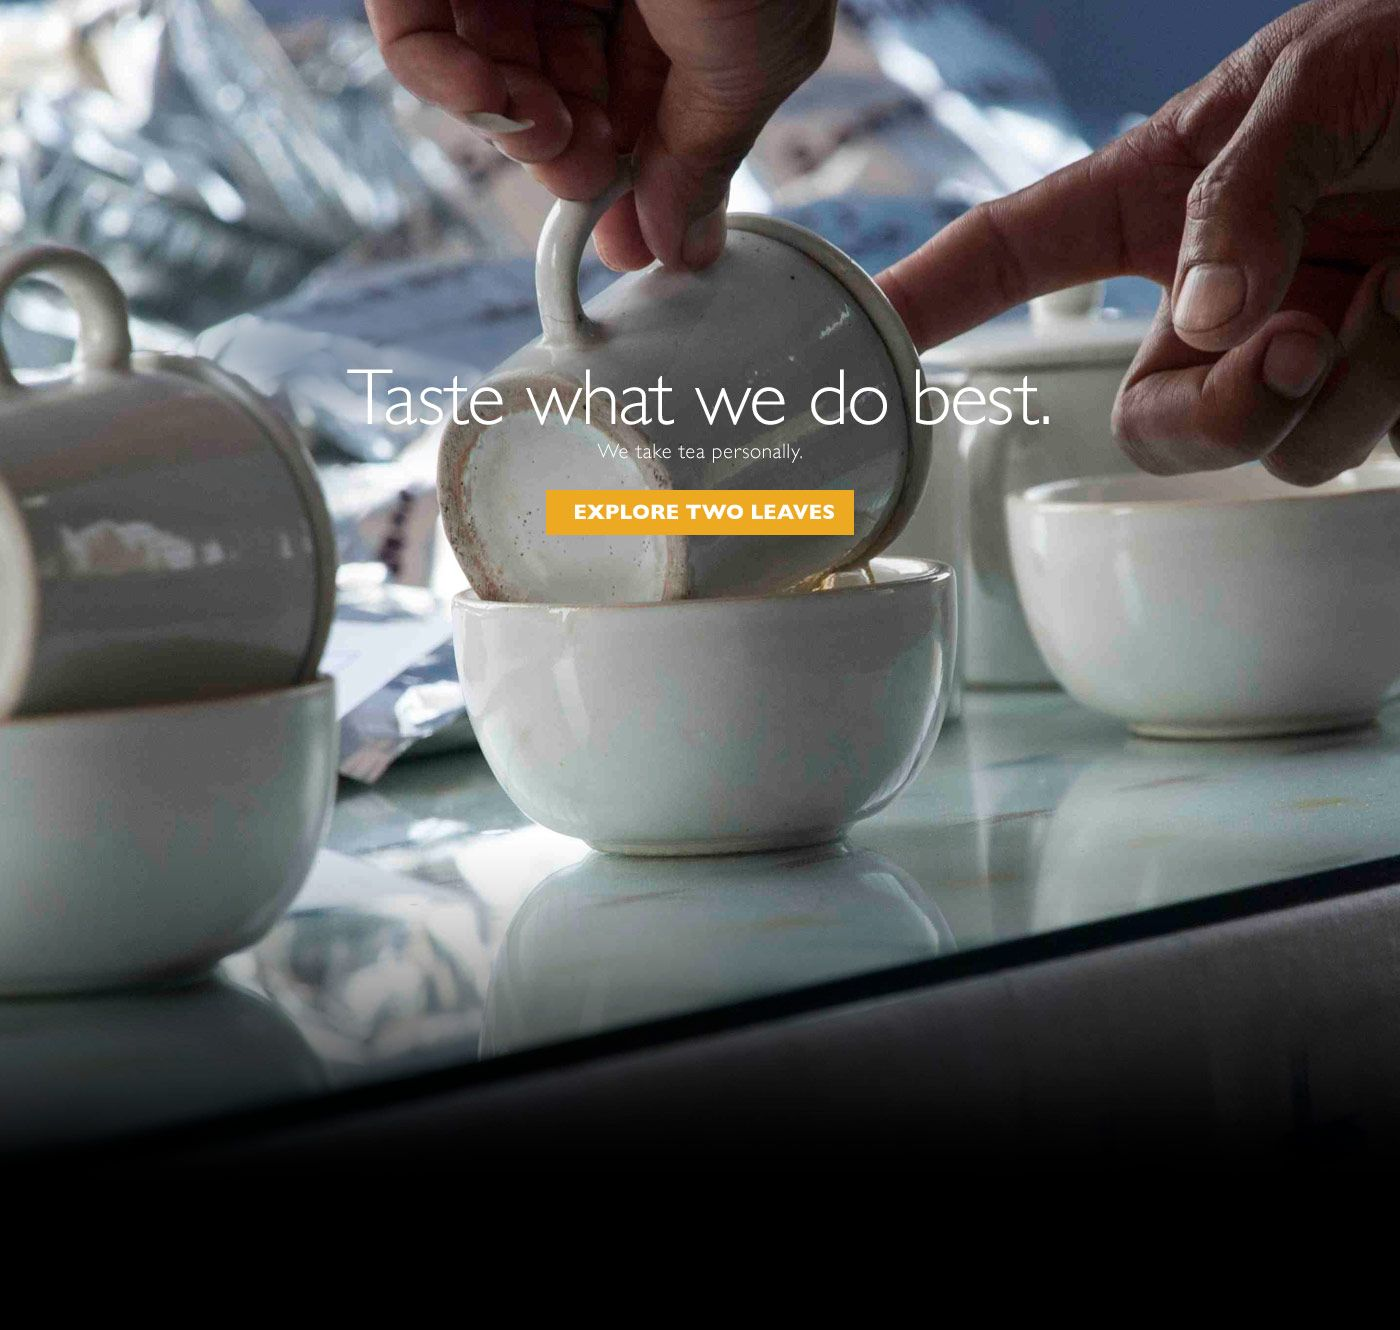 Two Leaves Tea (new company) Taste What We Do Best